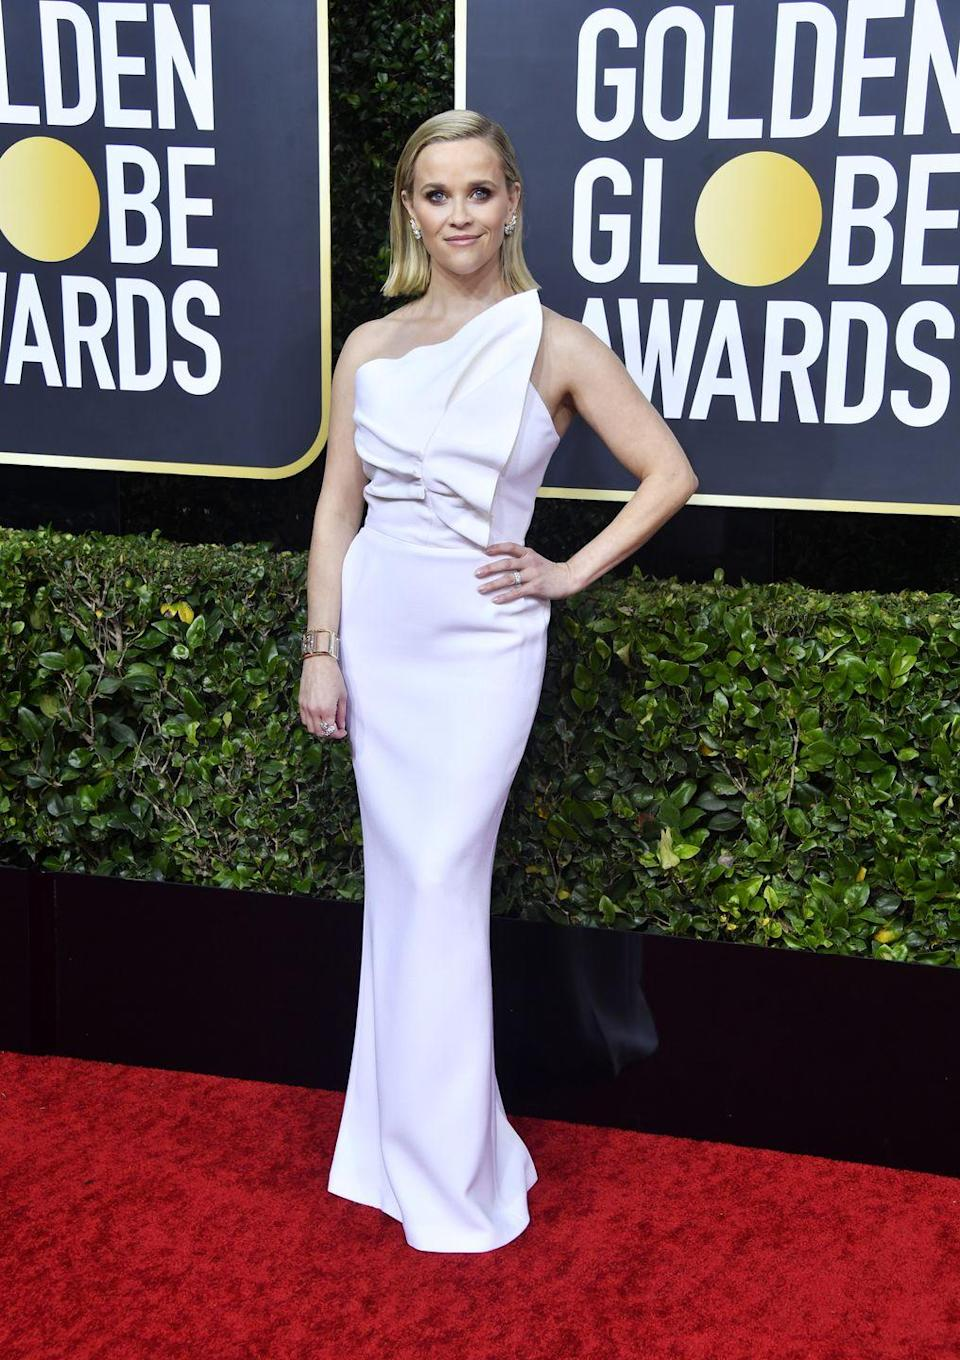 <p>The actress looked sleek and elegant in this Roland Mouret gown and Tiffany & Co. jewelry she wore to the 77th Annual Golden Globe Awards.</p>